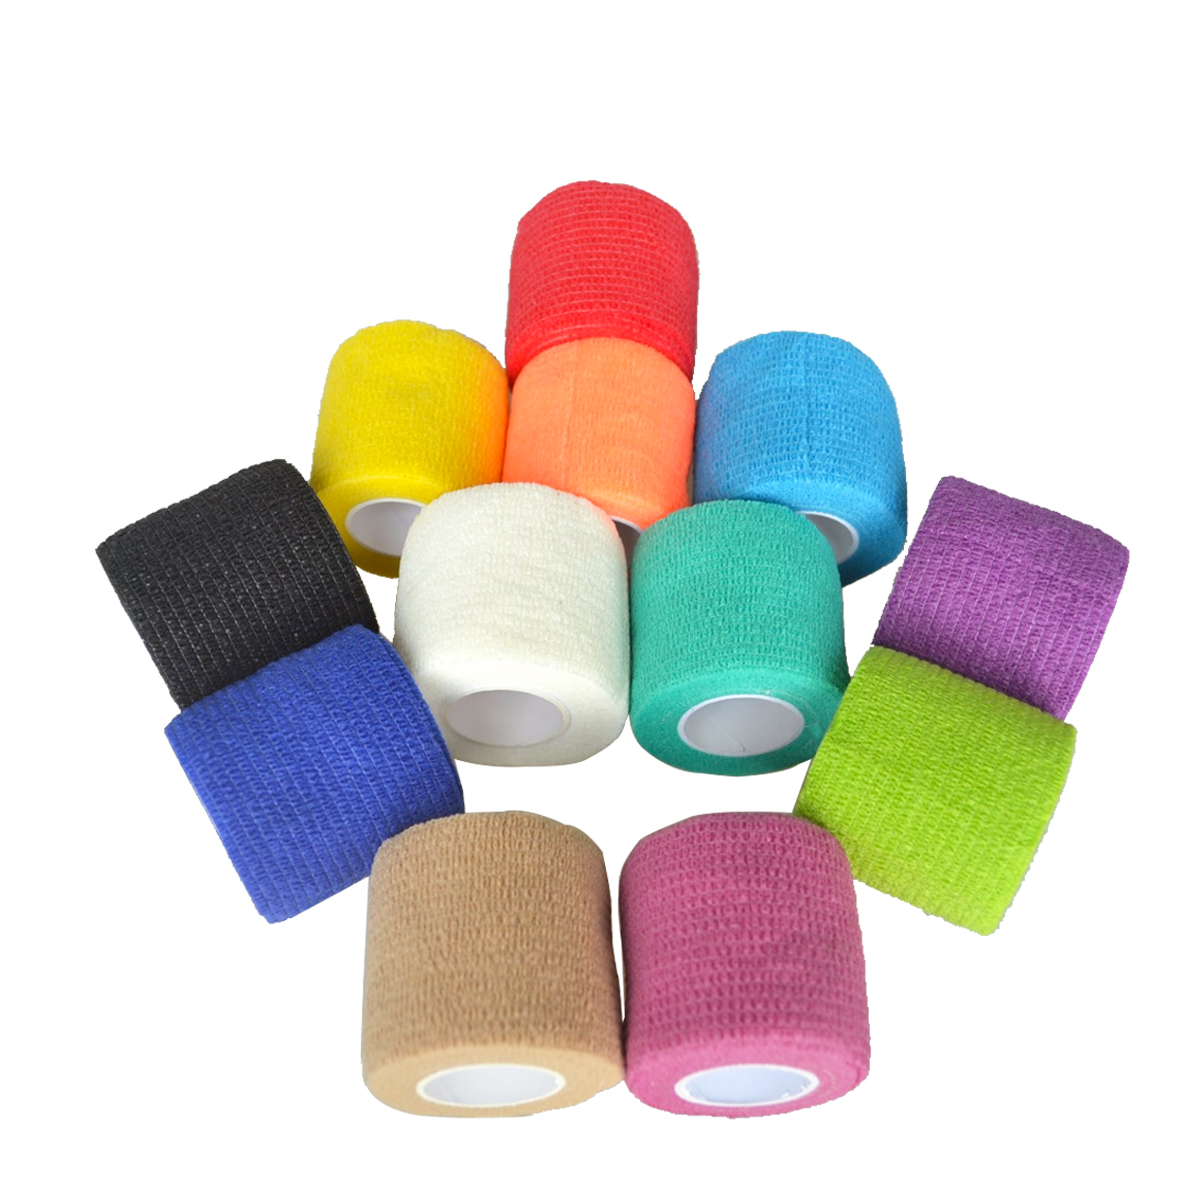 90Pcs/Lot Security Protection Self-adhesive Waterproof Bandage Elastic Cohesive Sports Tape Joint Support Sticker 5cm*5m 48pcs lot waterproof self adhesive nonwoven bandage first aid kit sport protect tape cohesive wound wrap for hand 5cm 4 5m